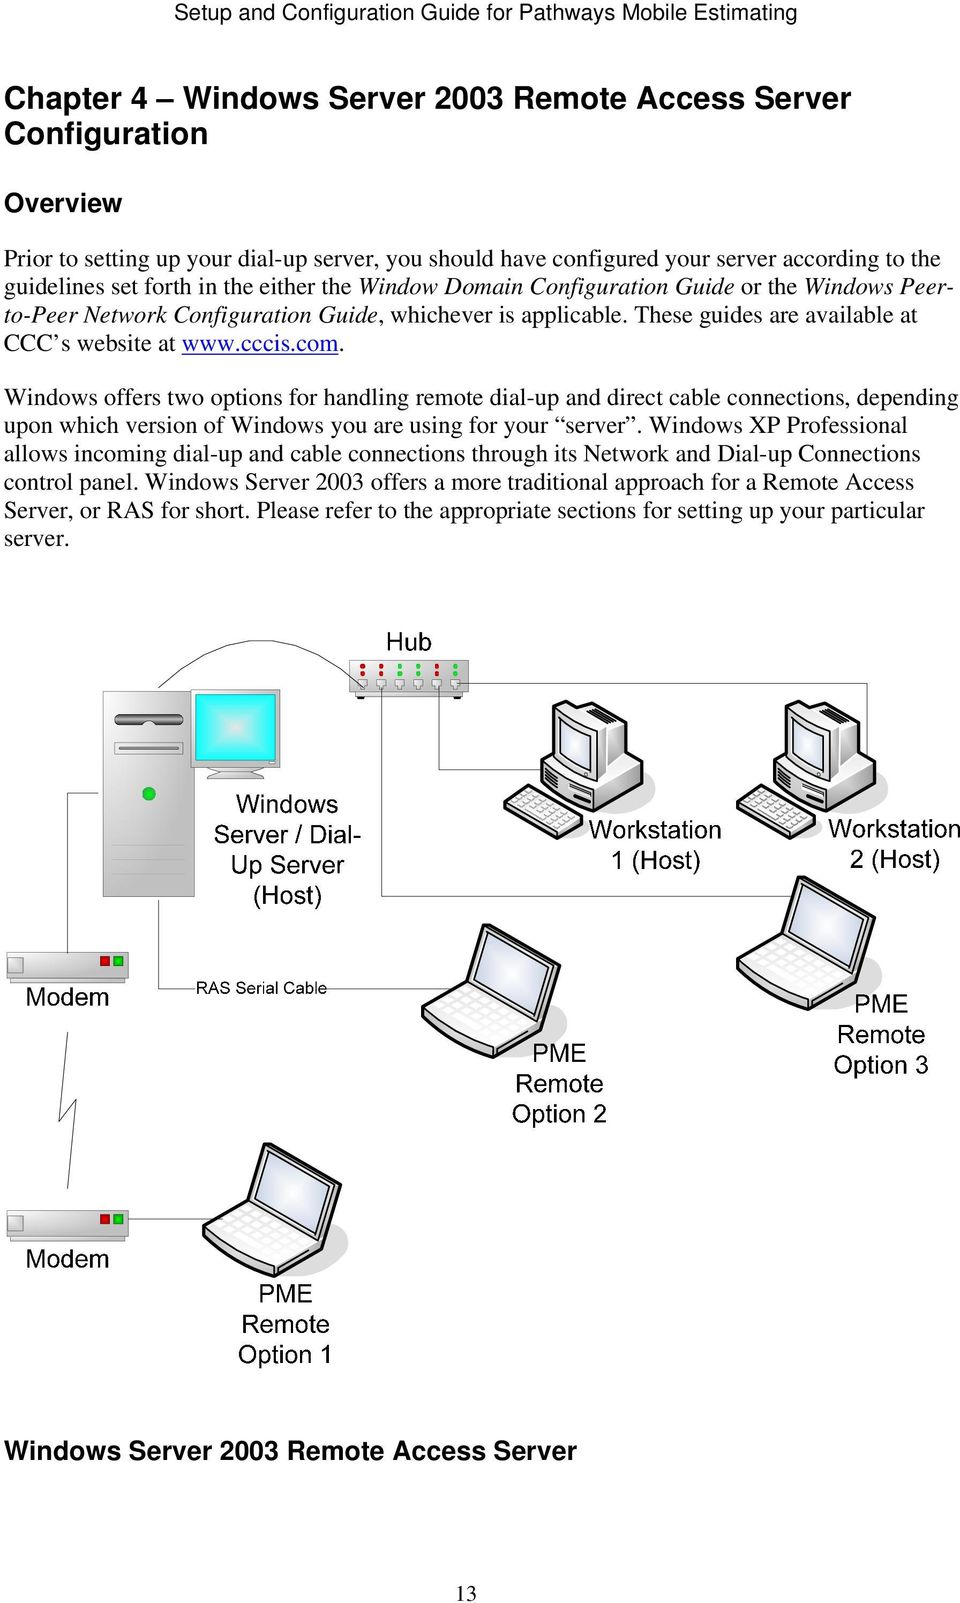 Windows offers two options for handling remote dial-up and direct cable connections, depending upon which version of Windows you are using for your server.